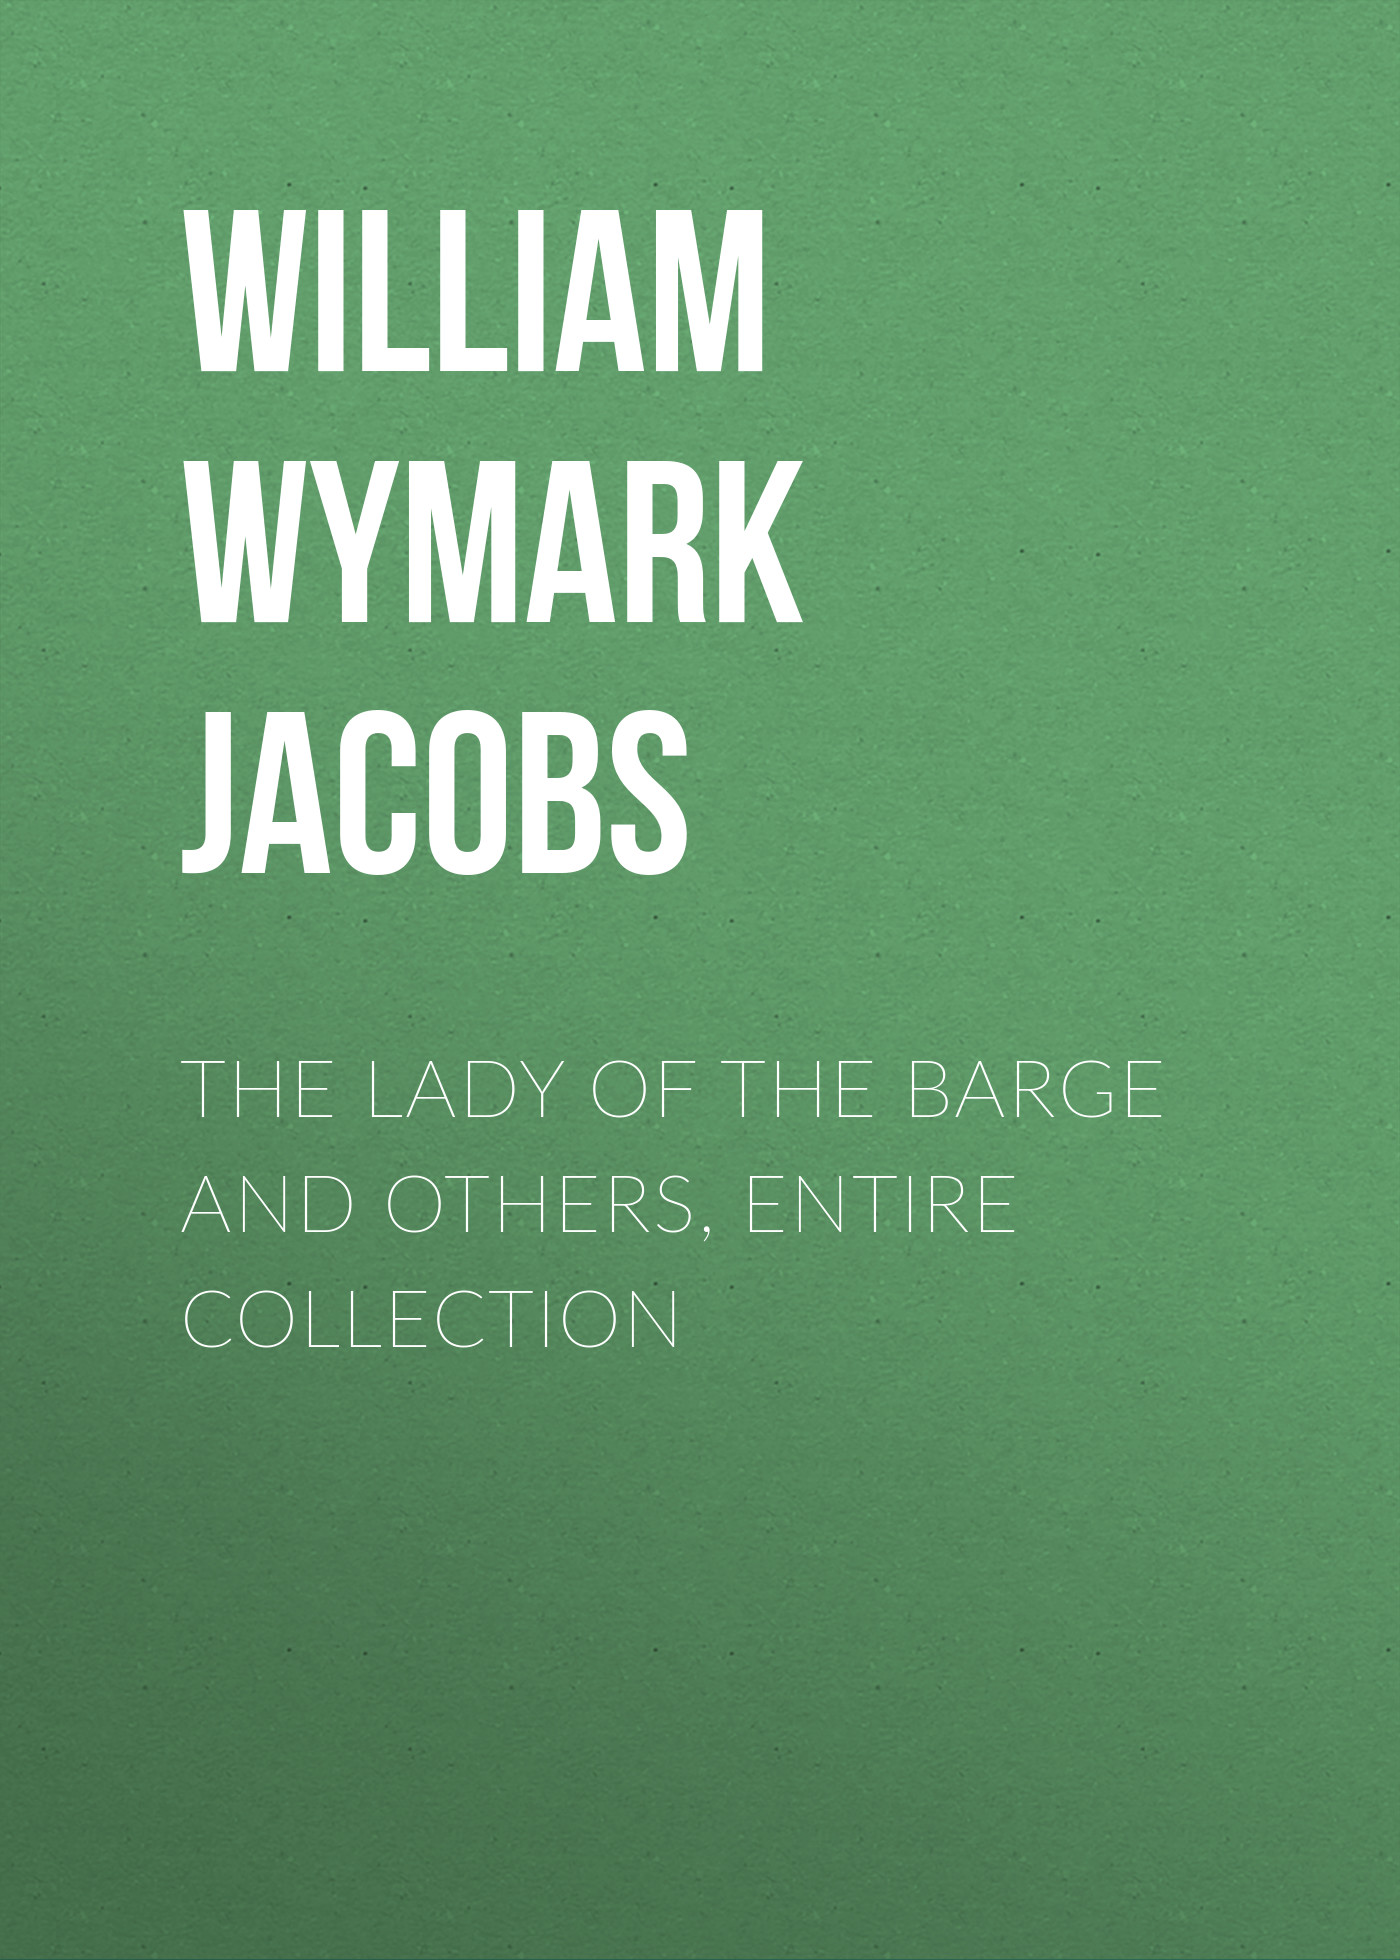 William Wymark Jacobs The Lady of the Barge and Others, Entire Collection william wymark jacobs a spirit of avarice